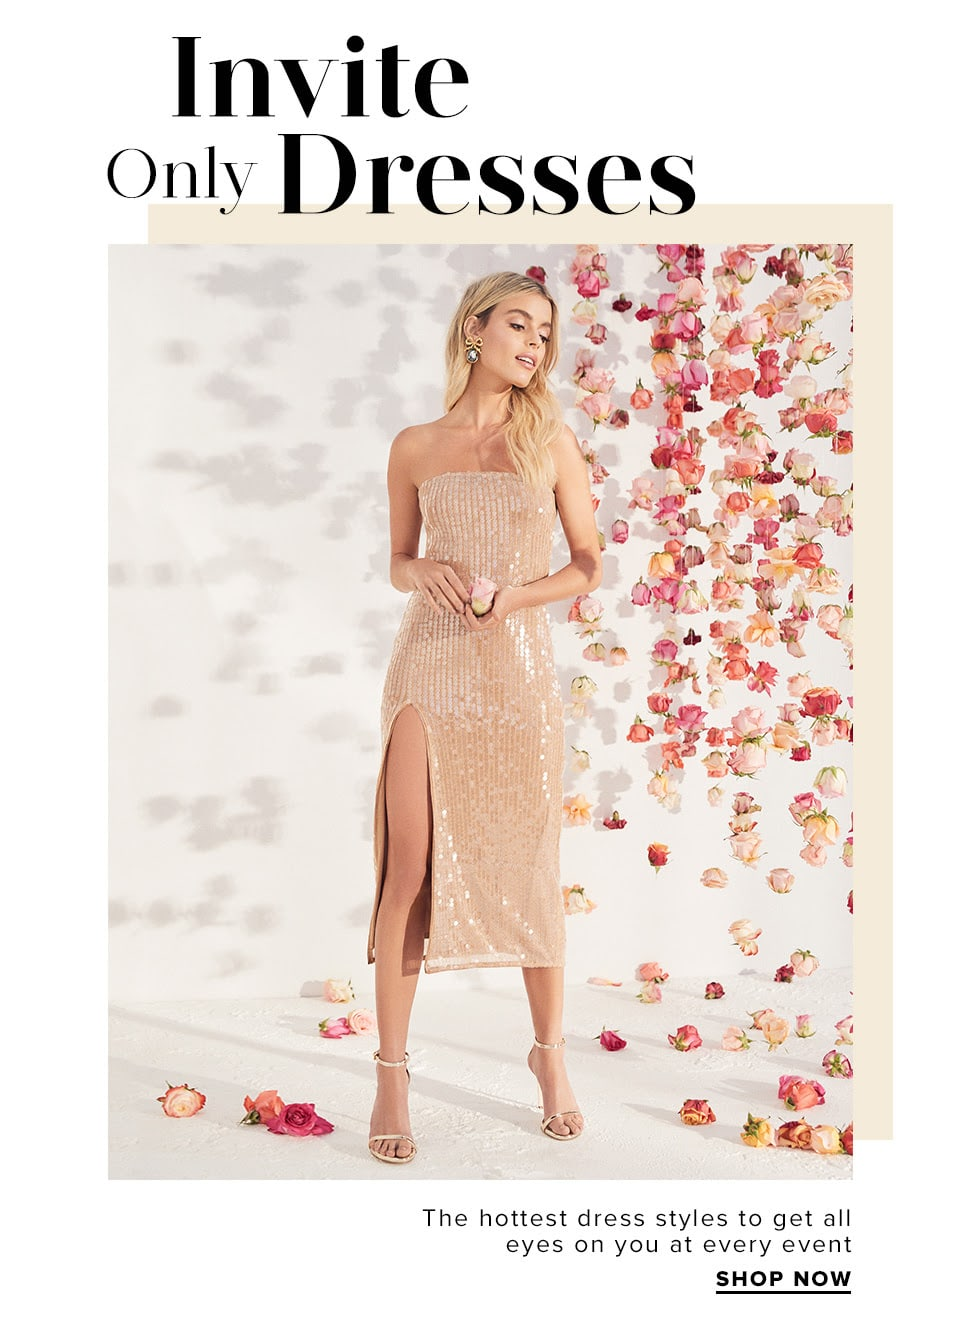 Invite-Only Dresses. The hottest dress styles to get all eyes on you at every event. Shop The Dress Edit.